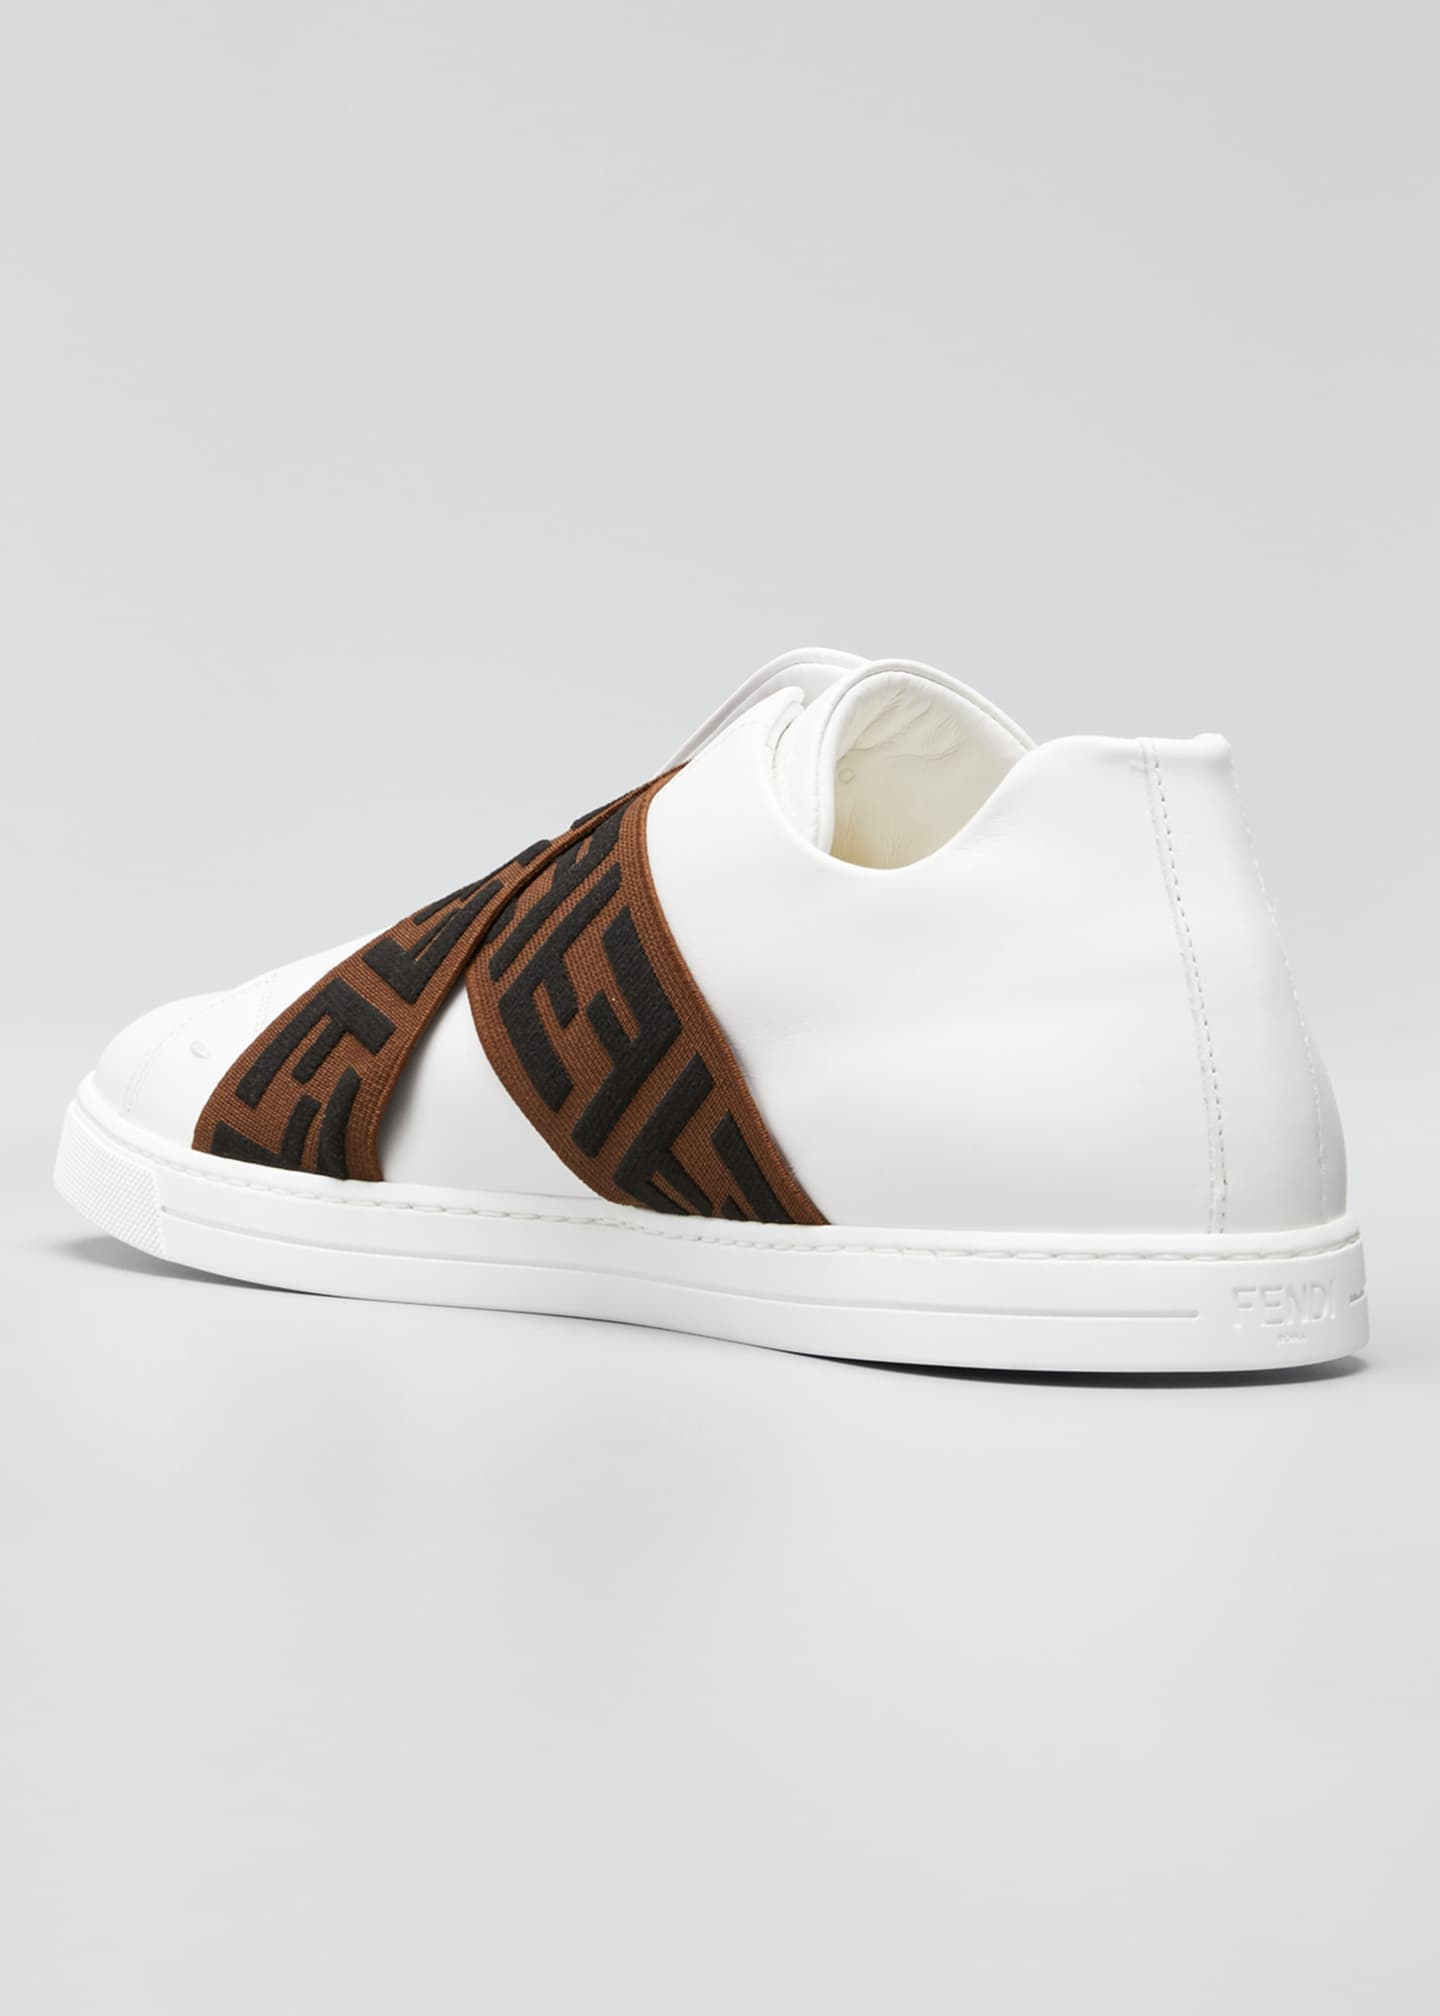 Image 2 of 3: Men's Laceless Leather FF-Strap Sneakers